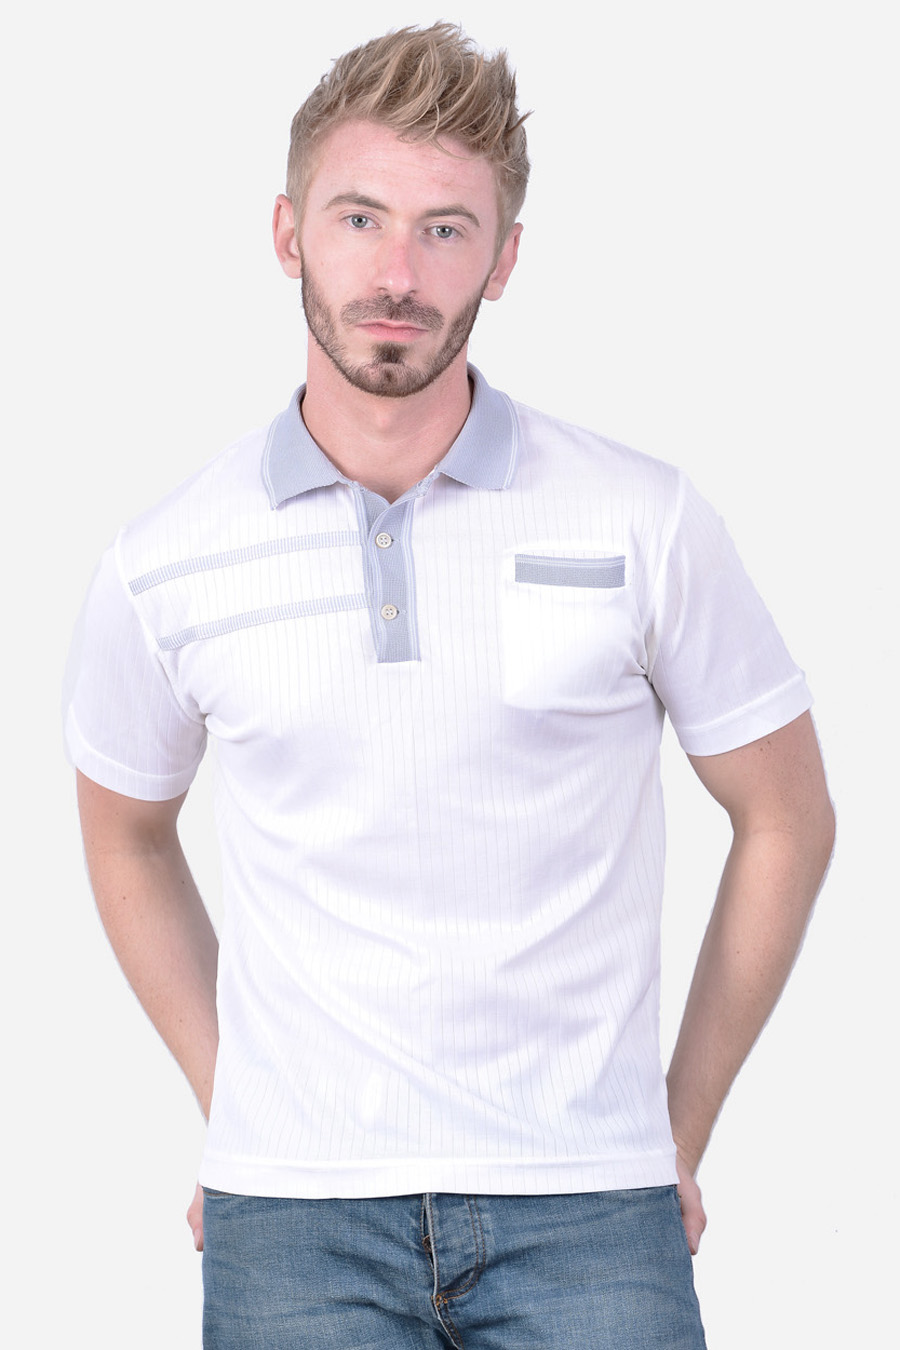 Retro 1980's polo shirt